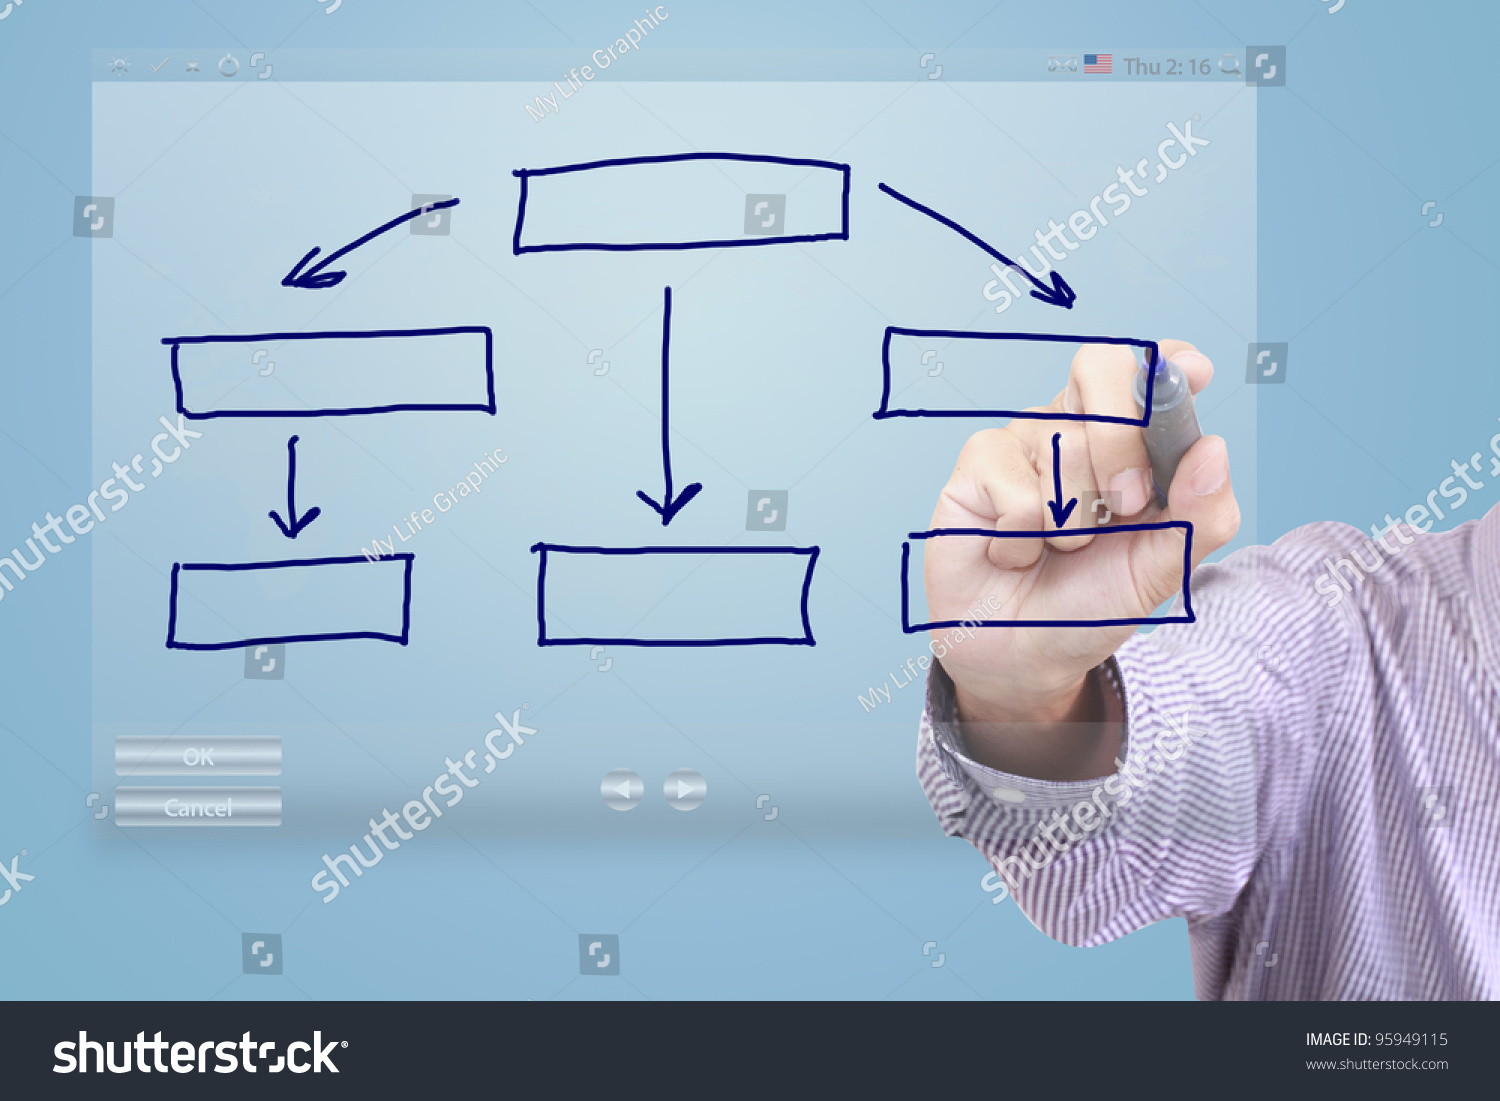 Flowchart Diagram Hand Drawing On Touch Stock Illustration 95949115 ...